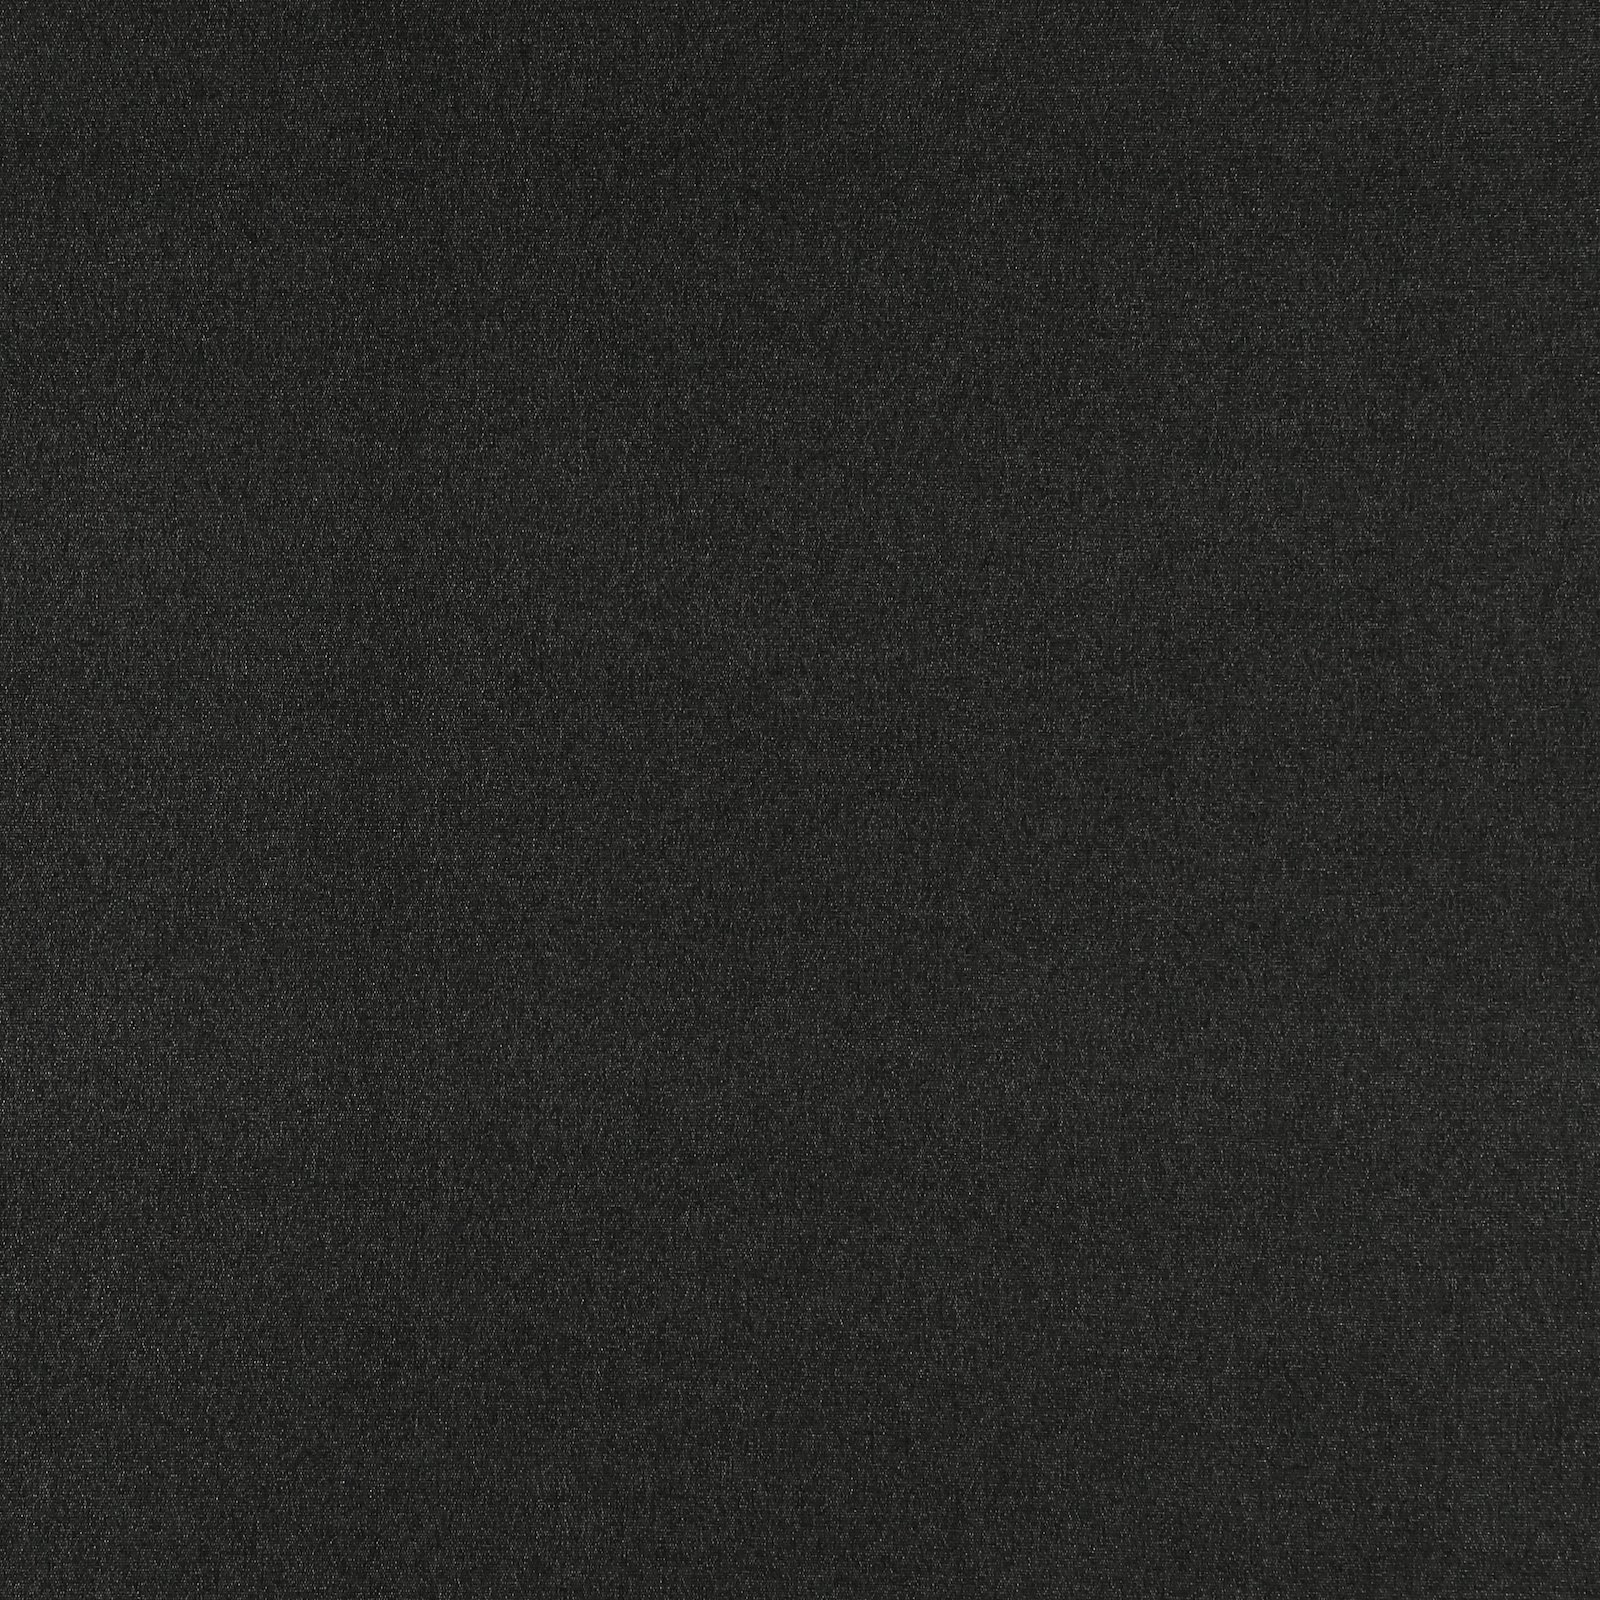 Upholstery fabric dark grey w/backing 824105_pack_solid